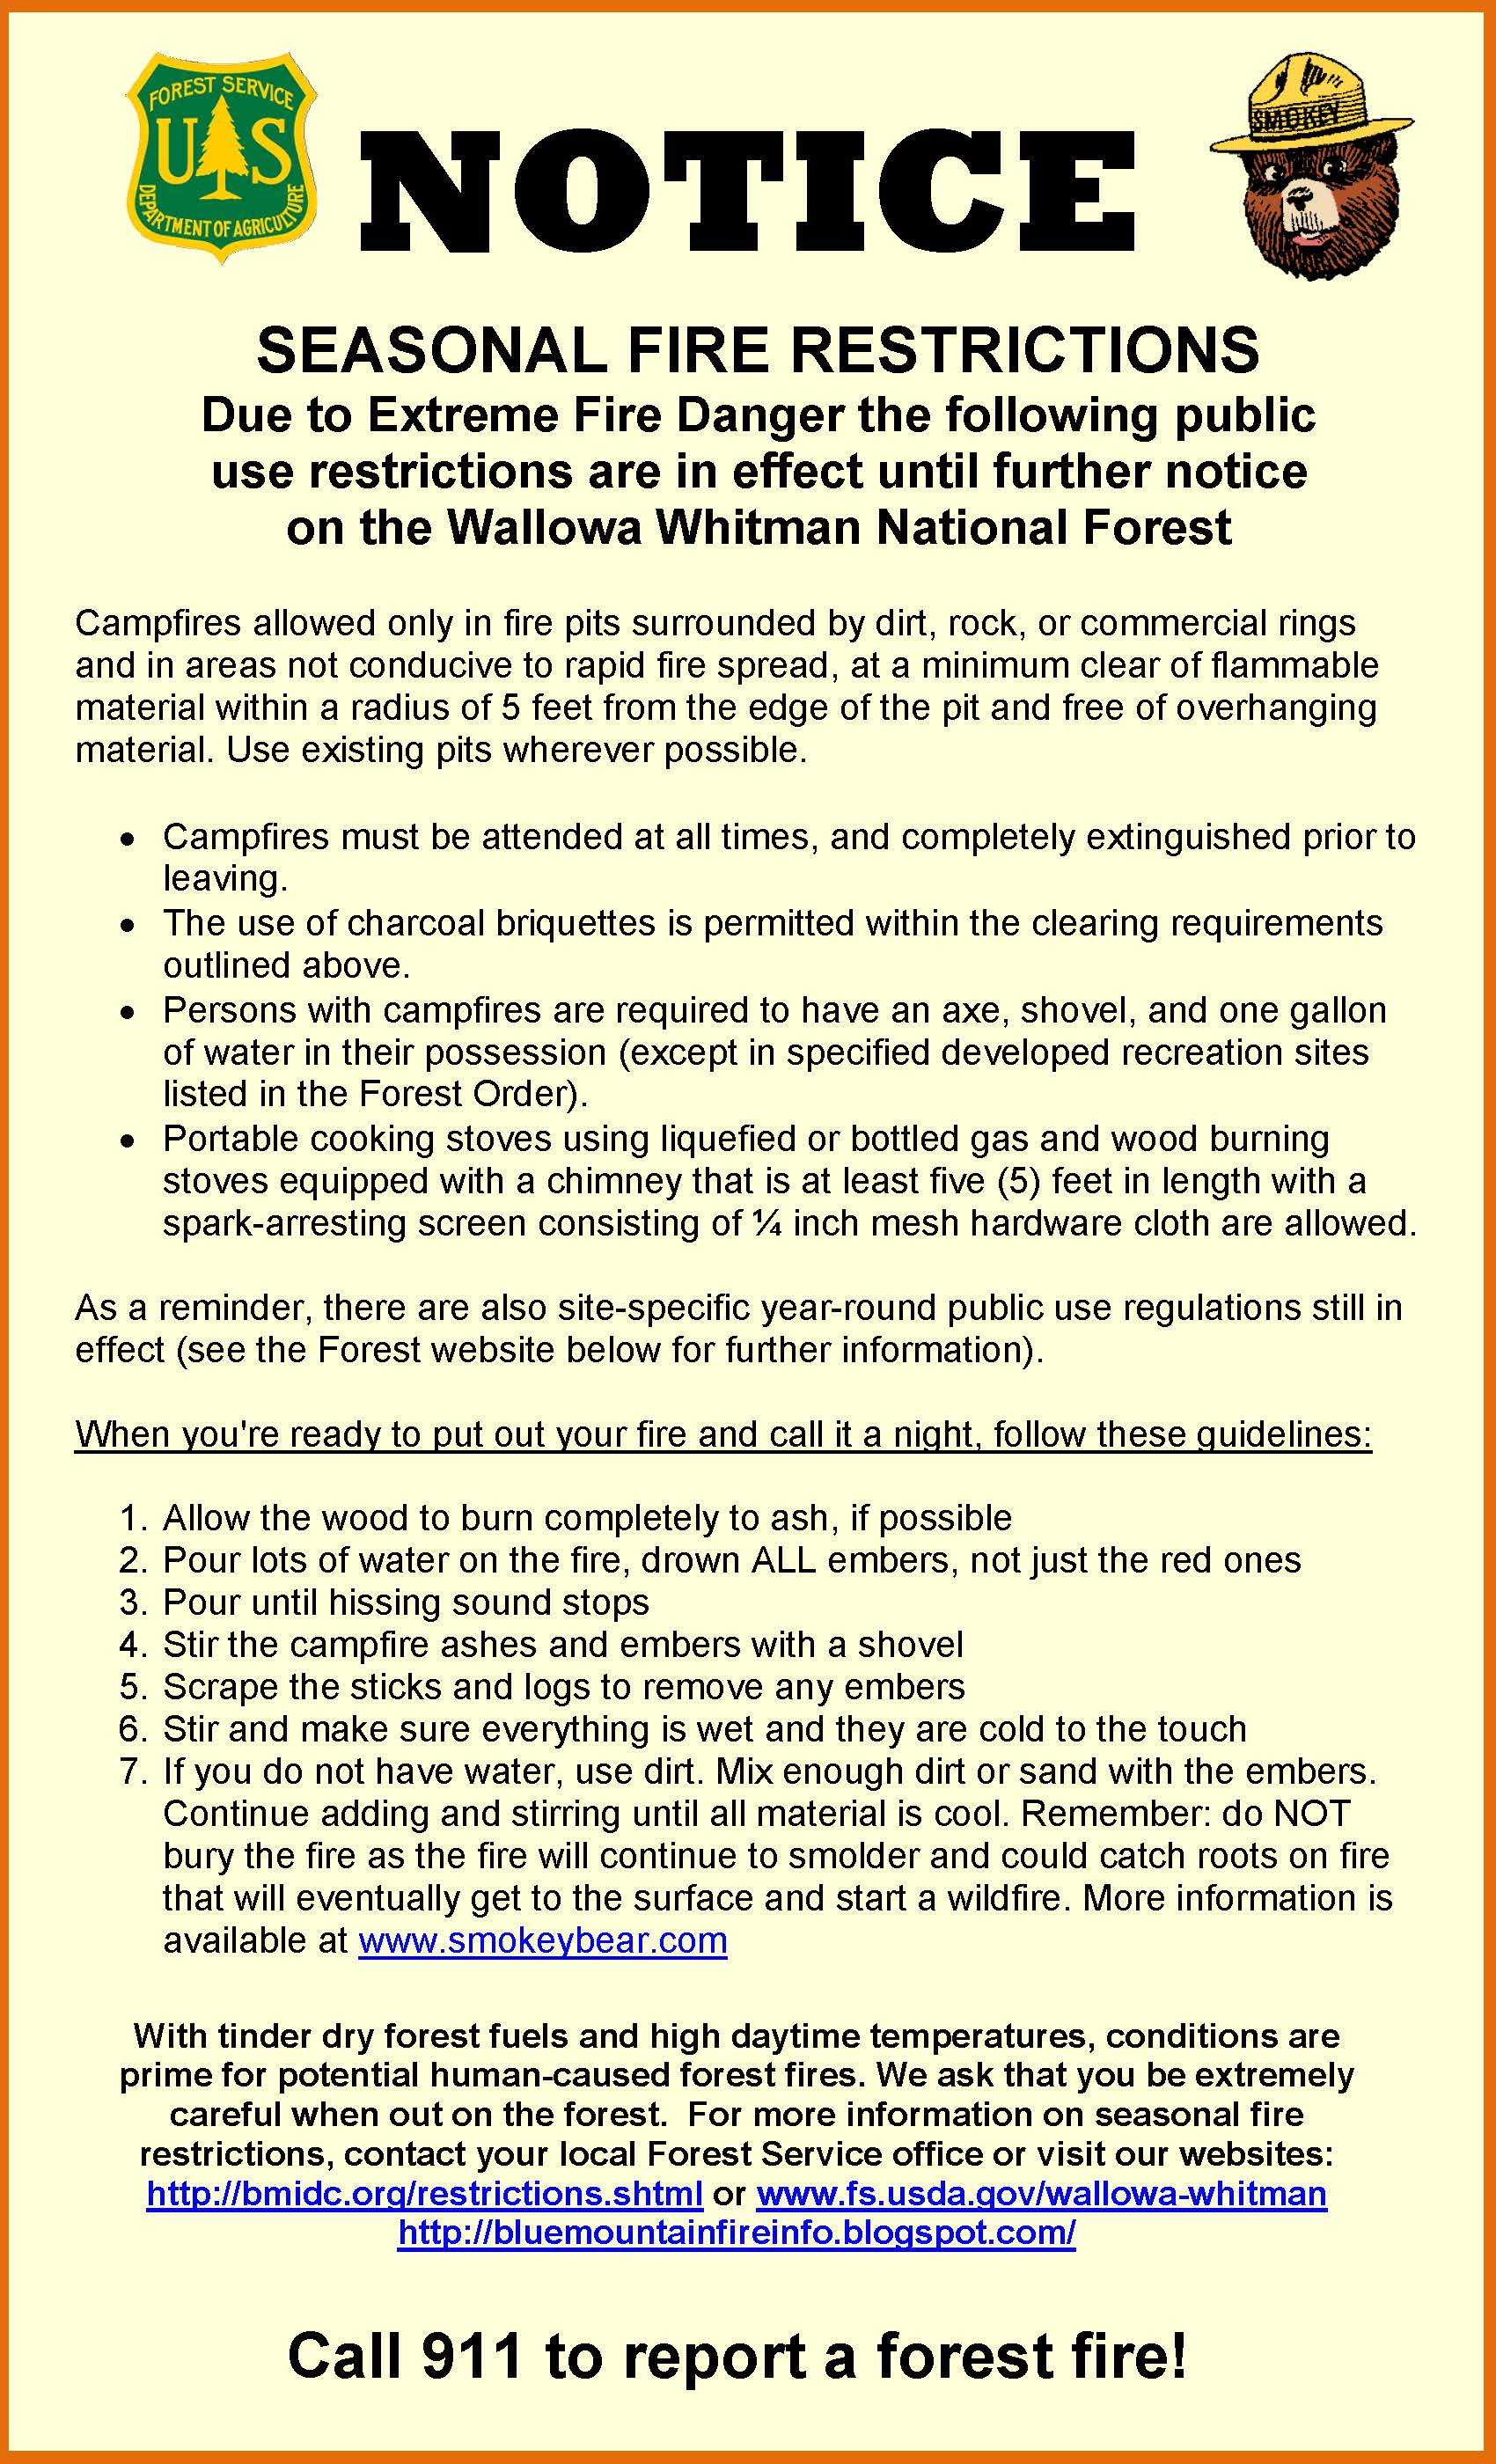 Seasonal Fire Restrictions